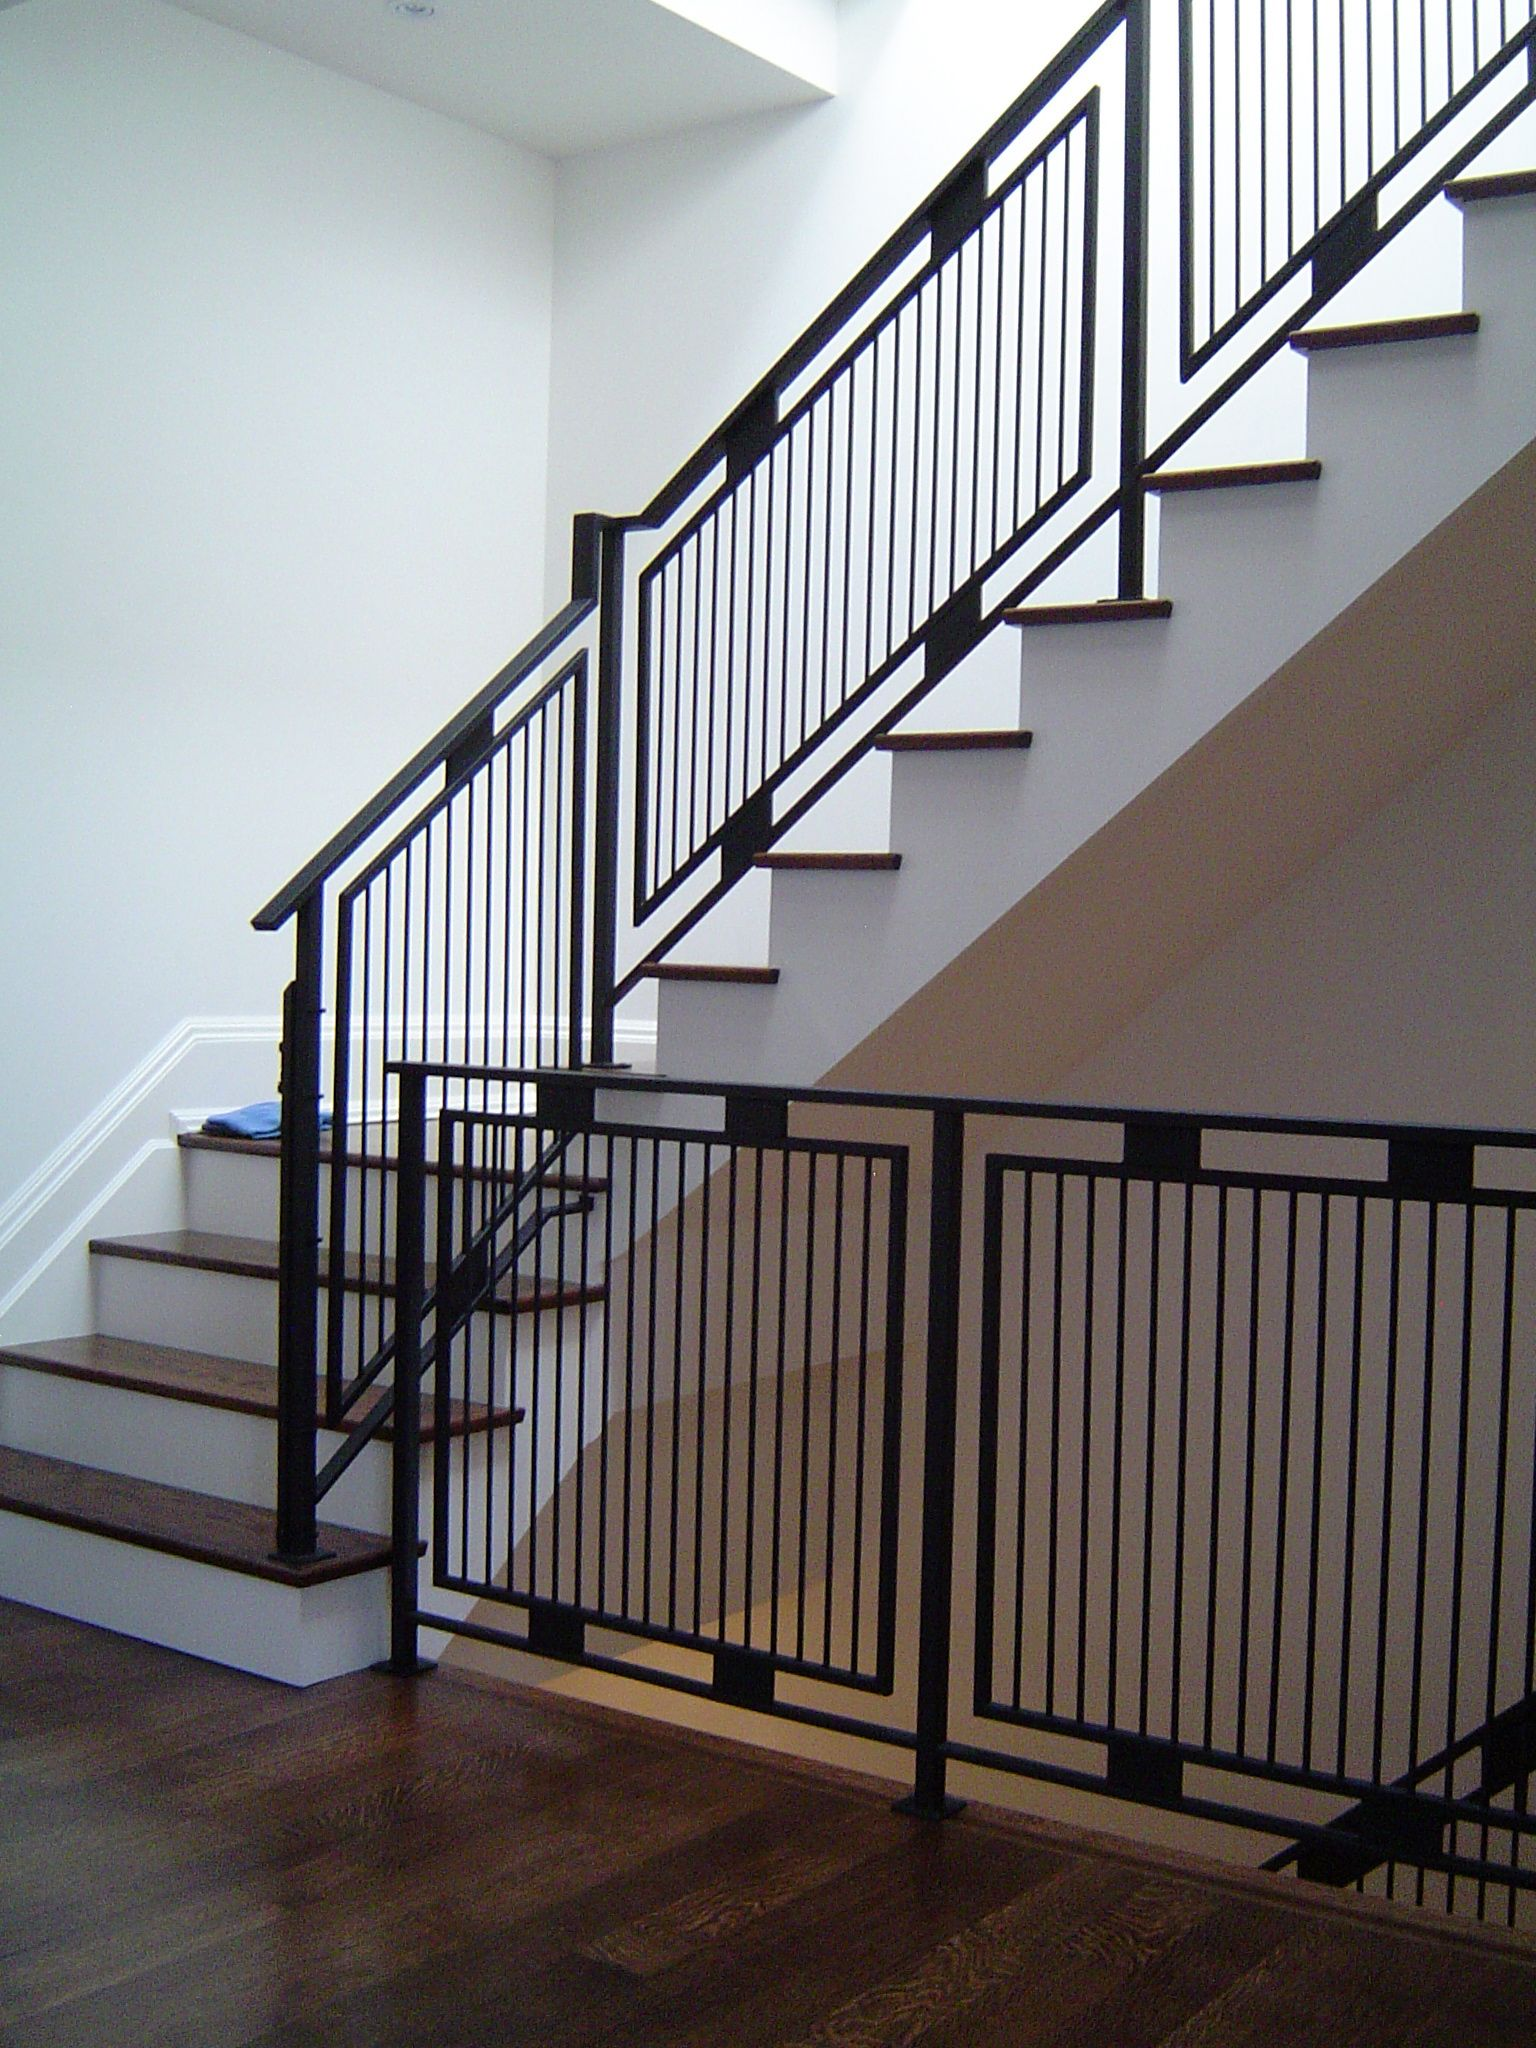 White Walls And Black Railing Www Thesteelworks Ca   Metal Staircases And Balconies